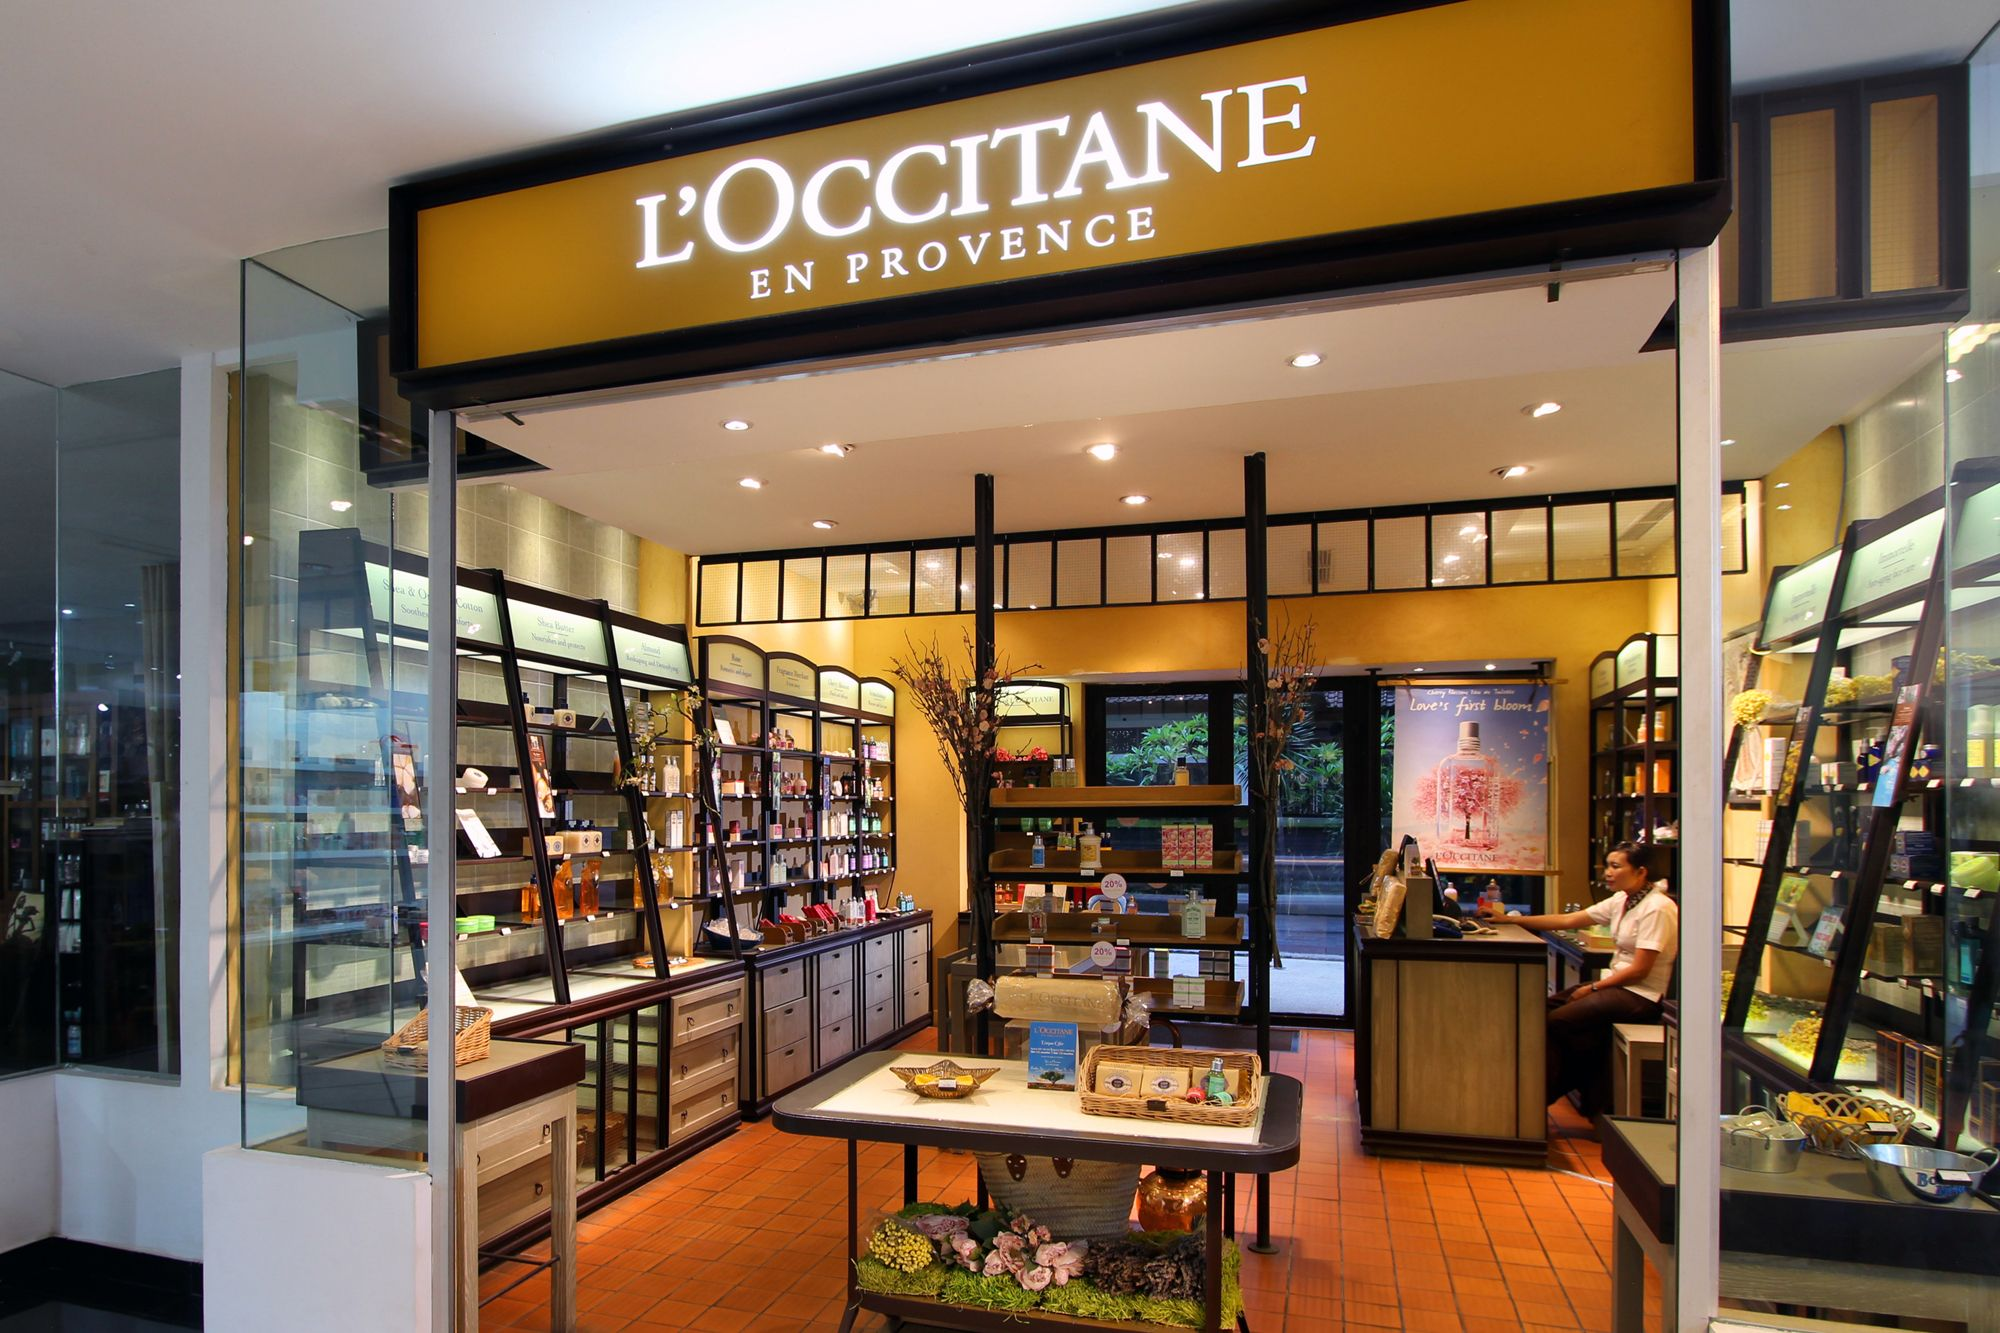 Loccitane Shop At The Next Door Of Bamboo Spa By Loccitane In